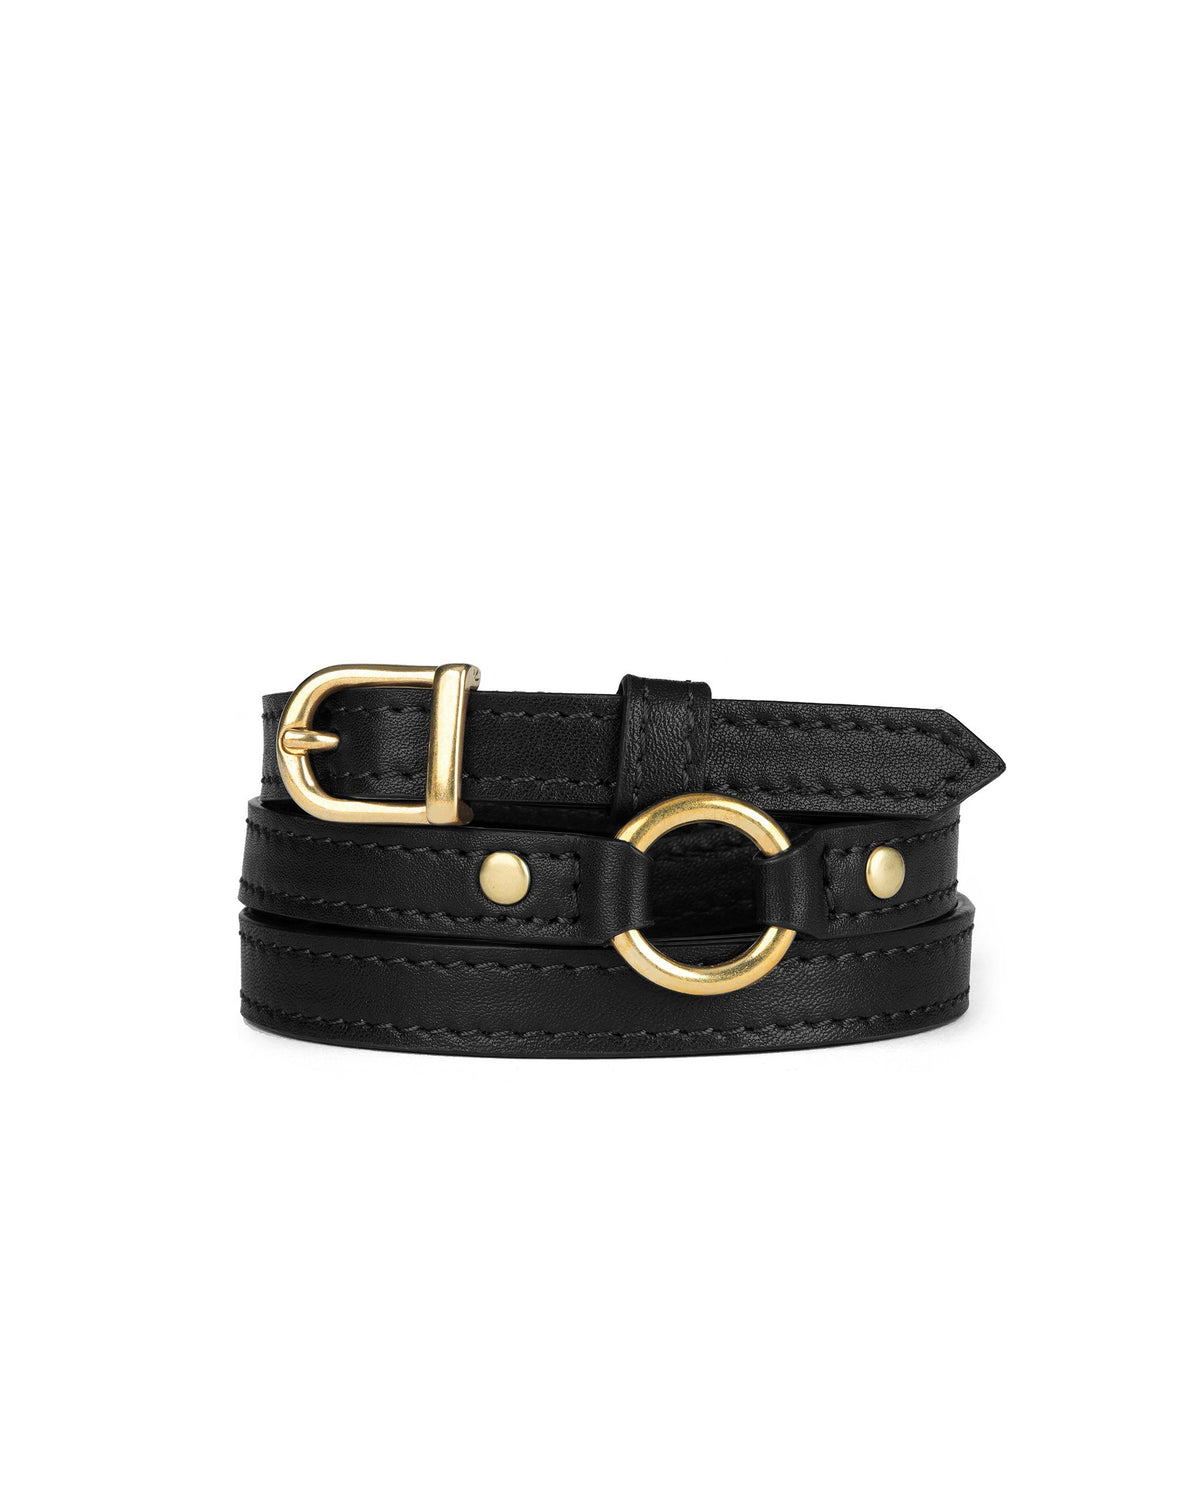 "1/2"" RING BELT in Black Napa"